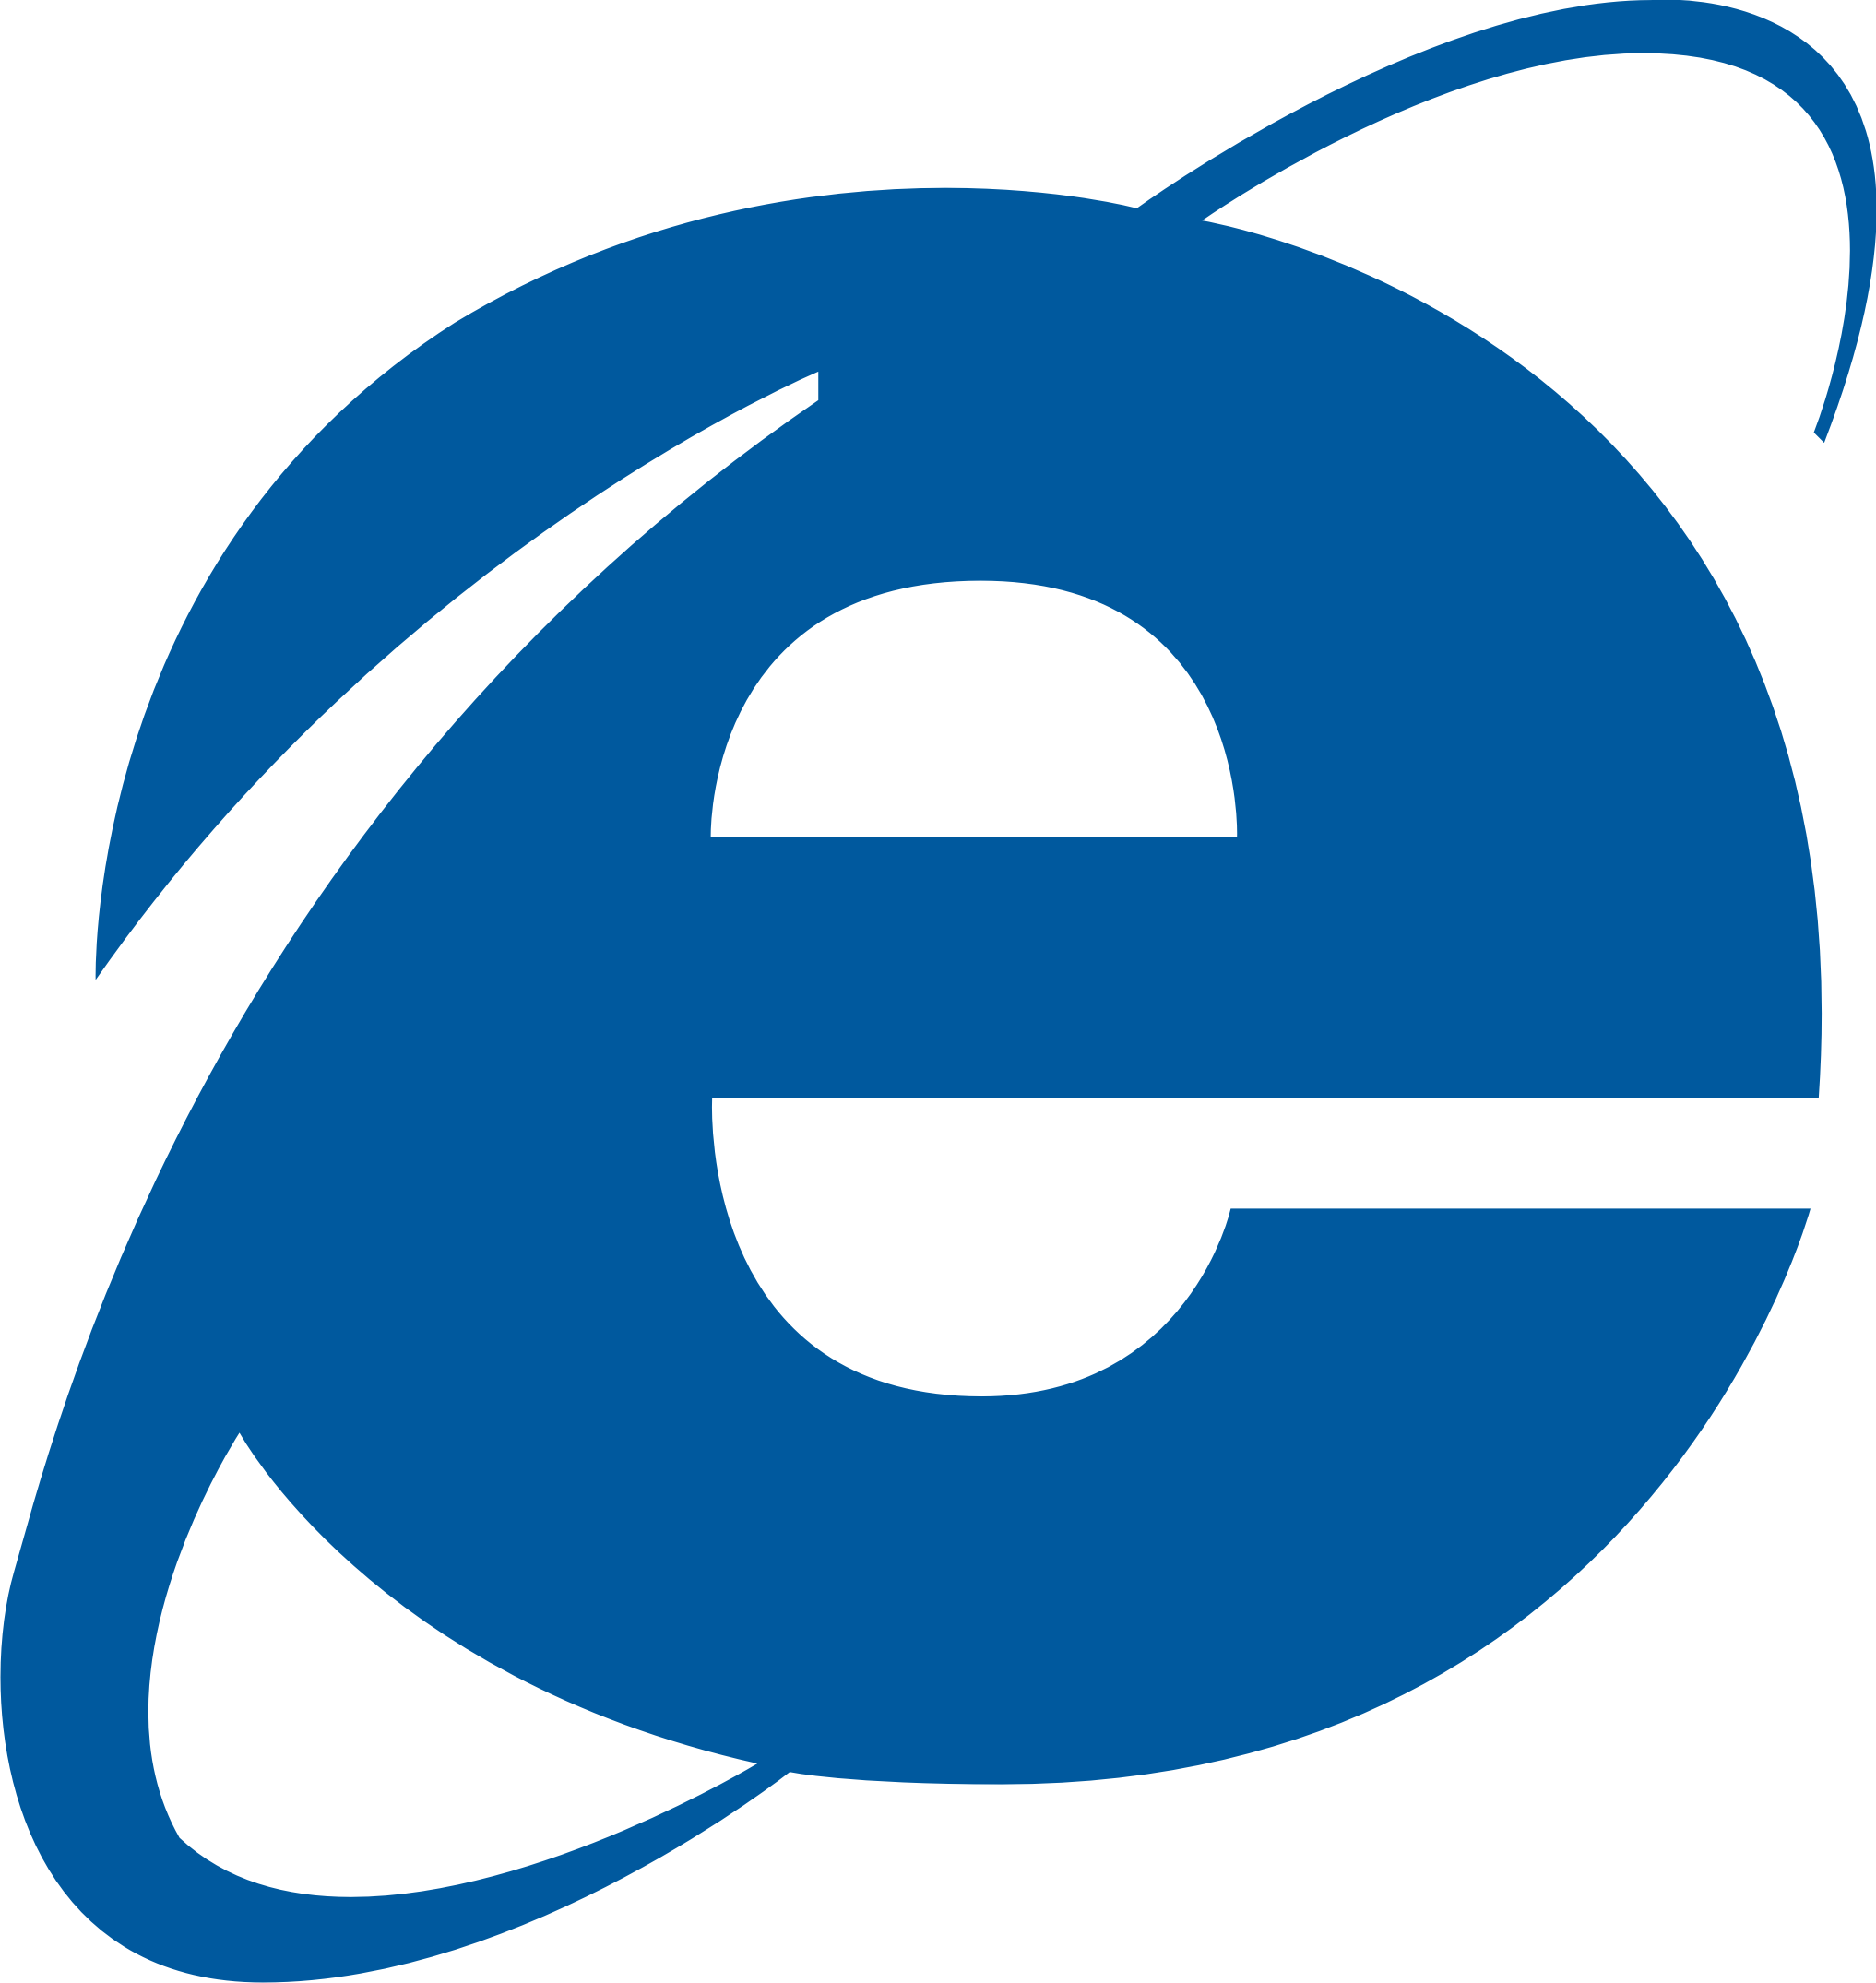 Internet explorer fix download free clipart with a.